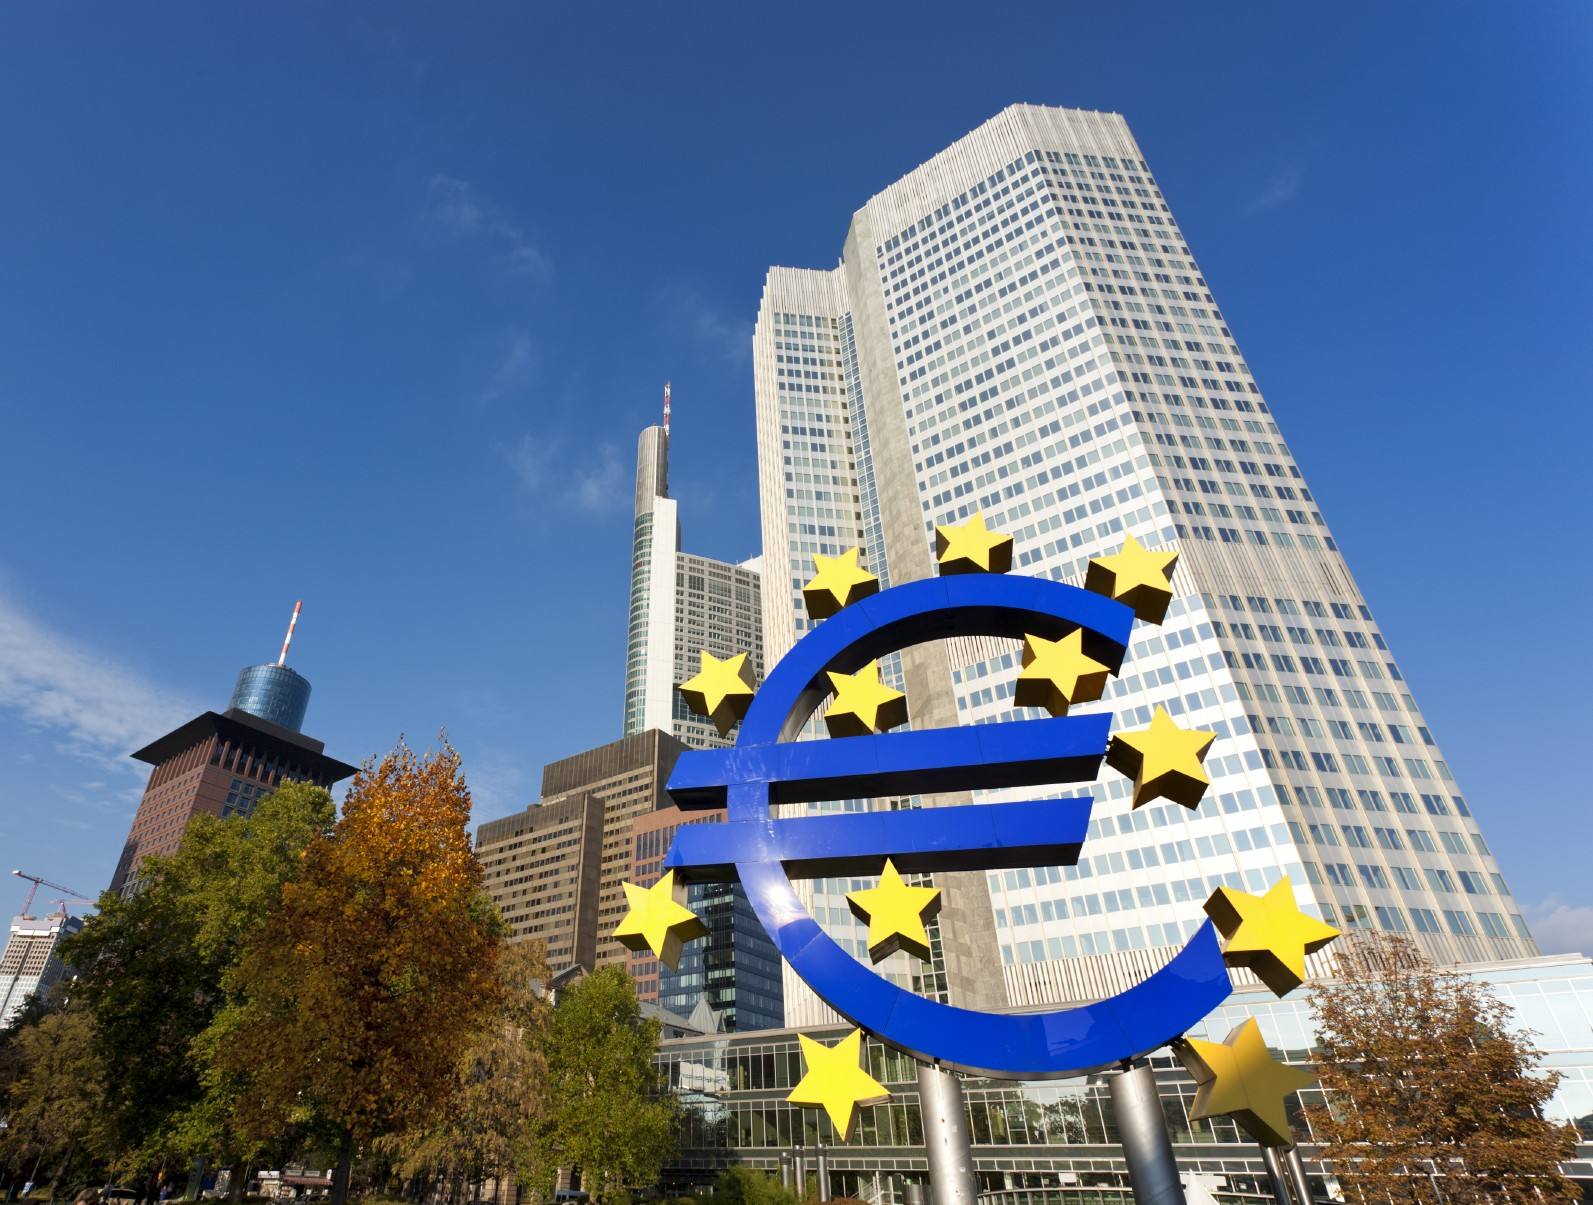 The skyscraper hosting the European Central Bank, large Euro sign in foreground